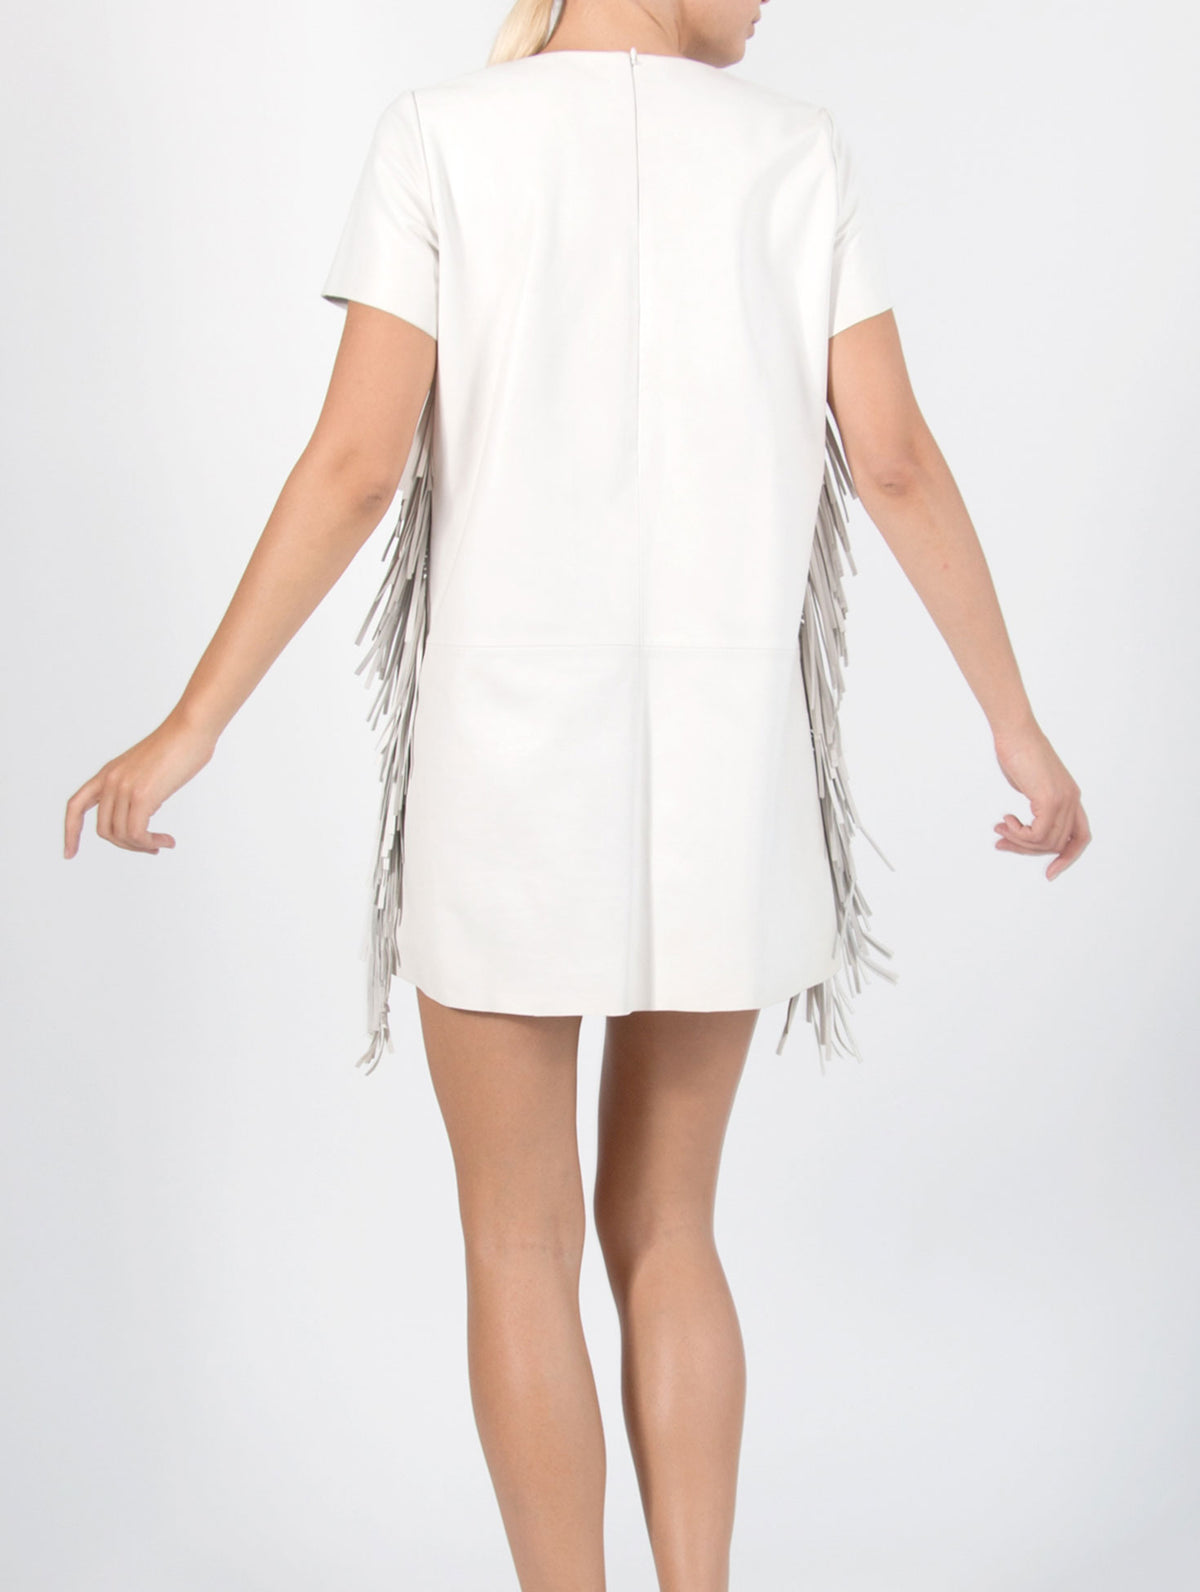 Nappa Leather Fringe Dress - Cream